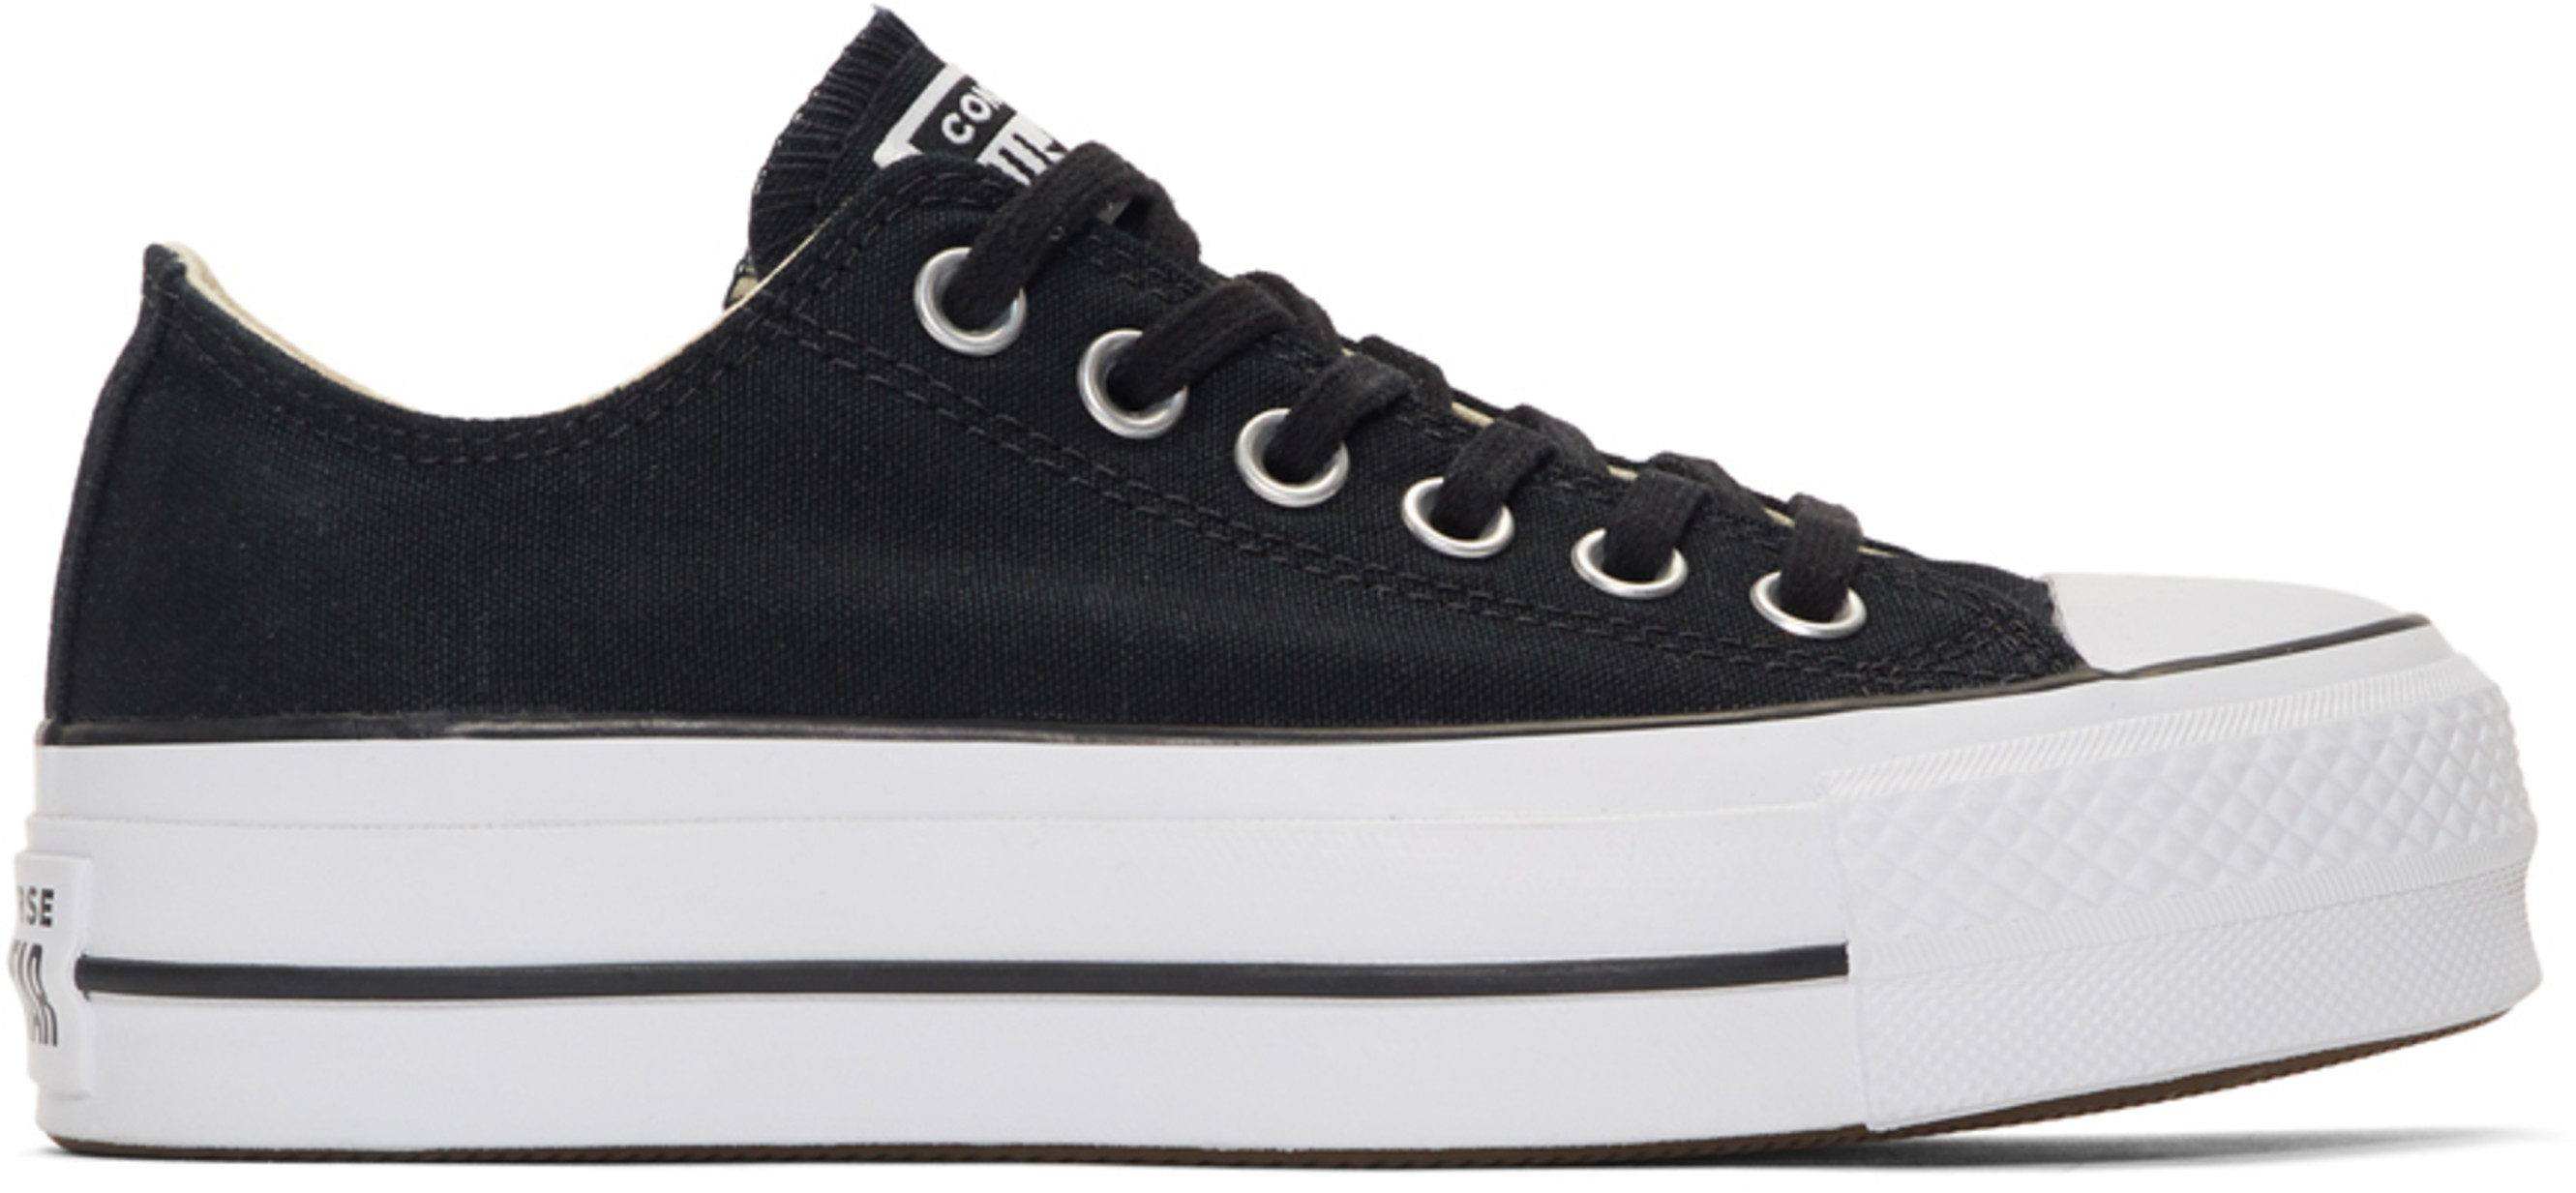 b4b66f12aaa6 Converse for Women SS19 Collection